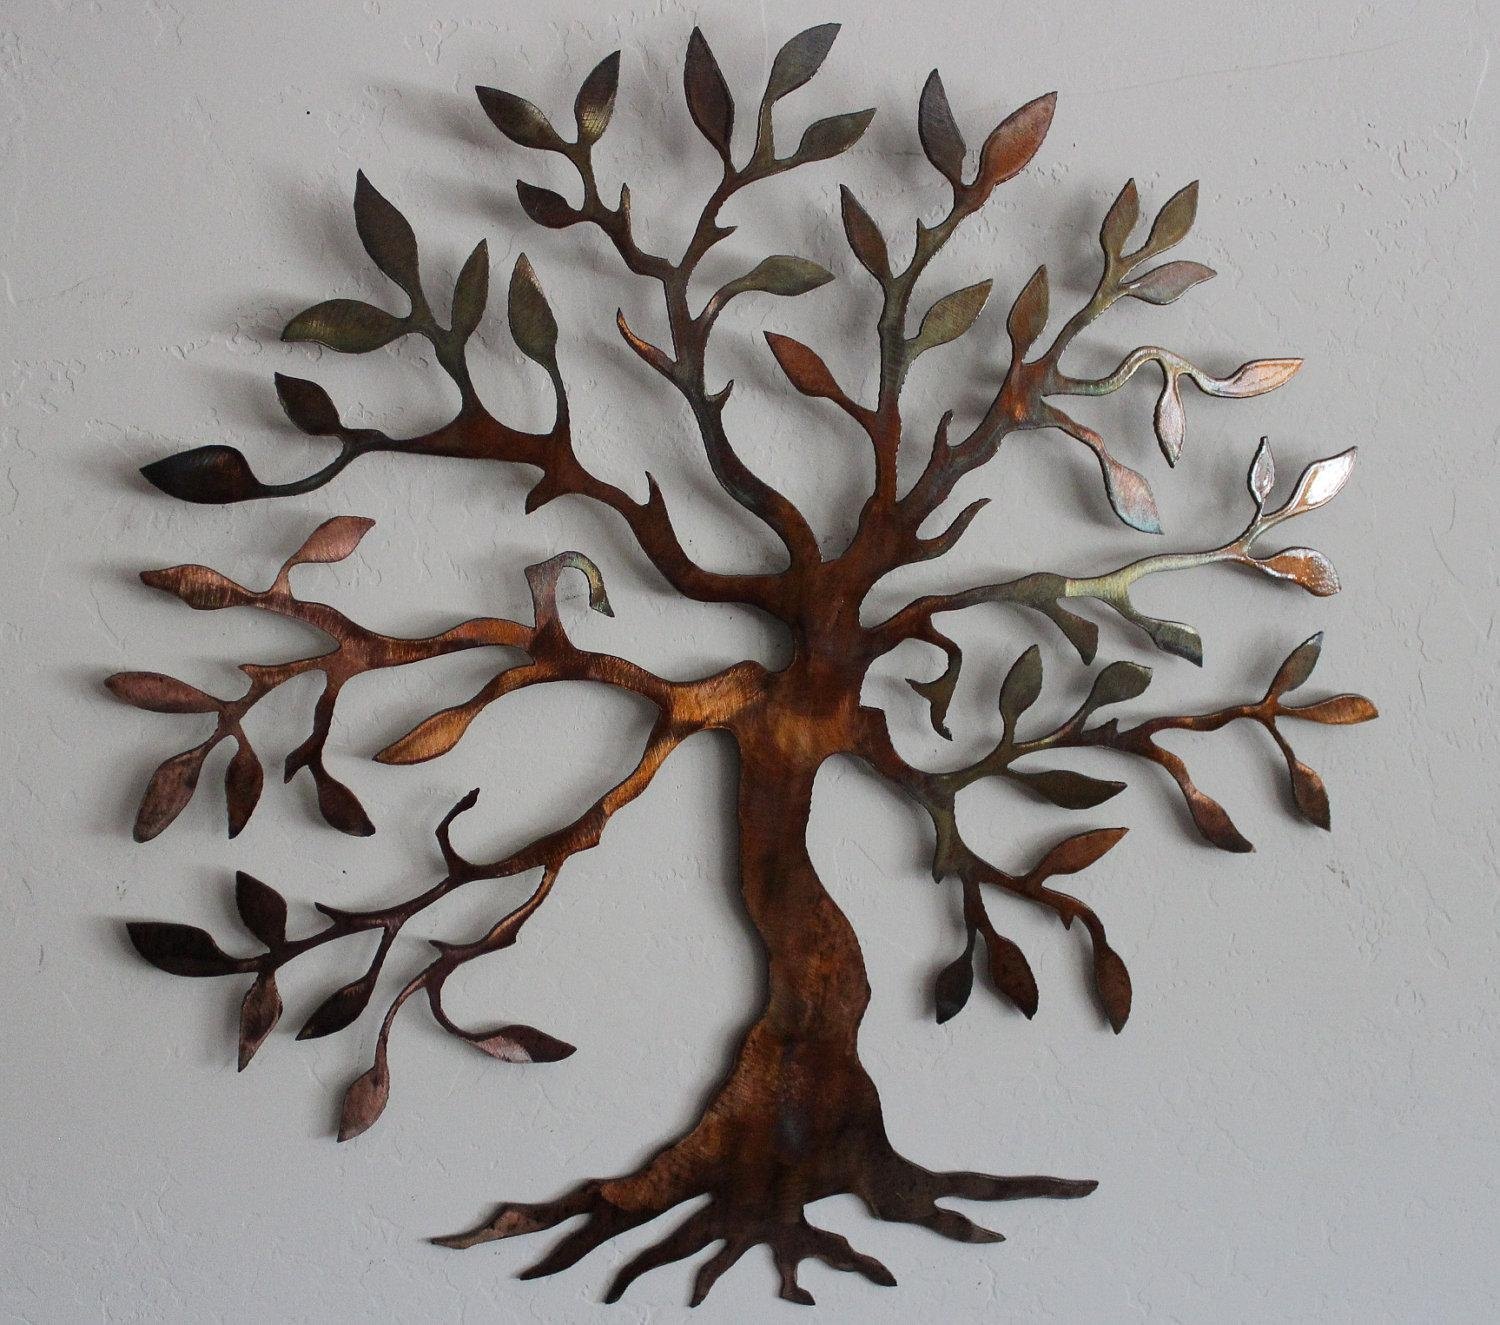 Metal Wall Art Decor And Sculptures Ideas | Jeffsbakery Basement Throughout Tree Wall Art Sculpture (Image 10 of 20)